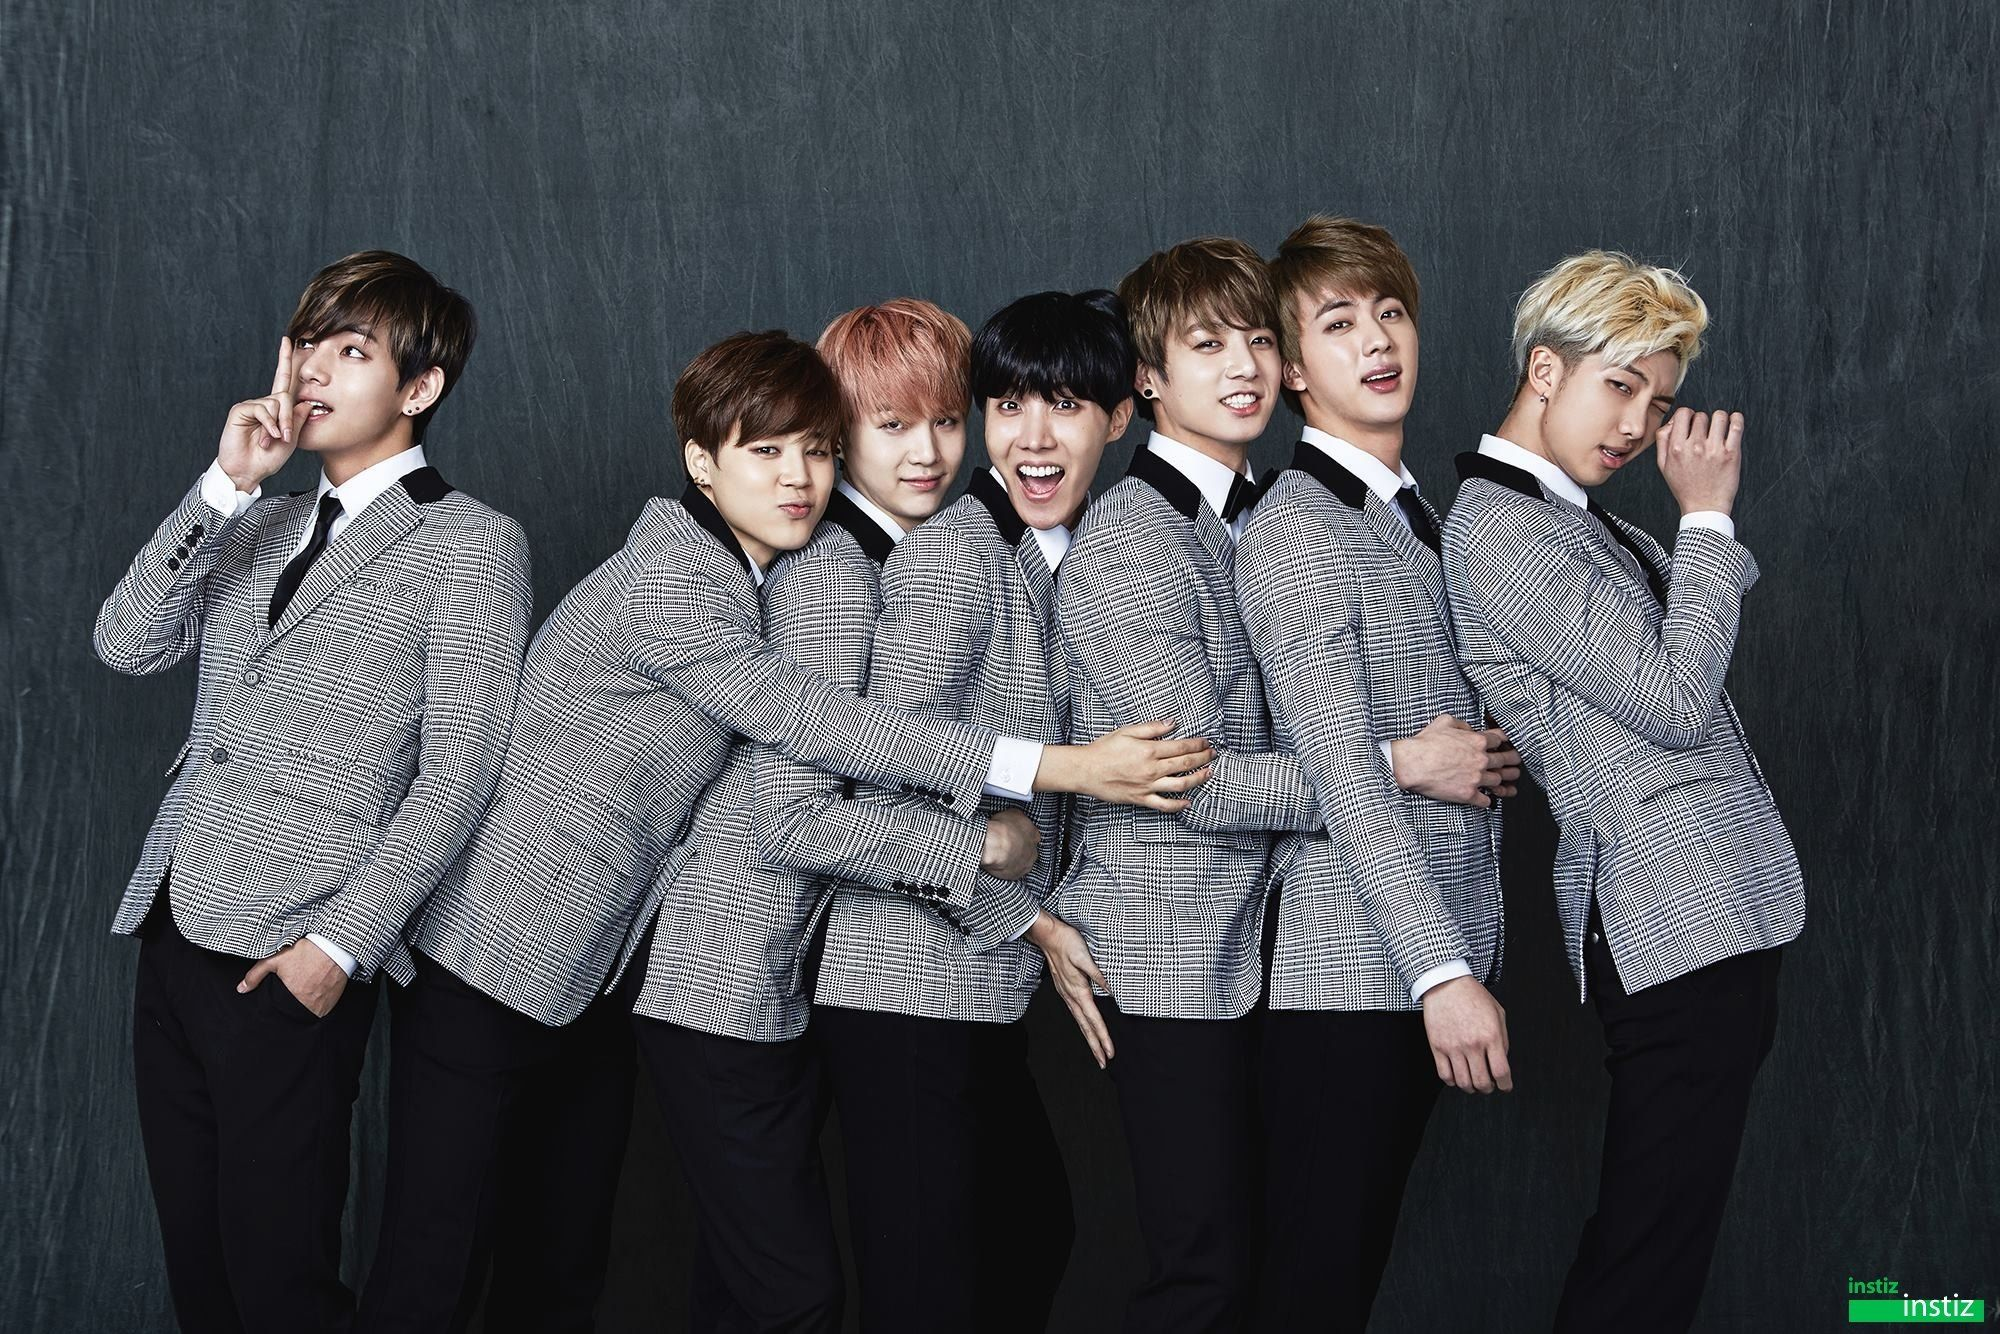 Bts Proves To Be A True Close Knit Idol Group With Their Family Shoots Bangtan Boys Bangtan Bts 2015